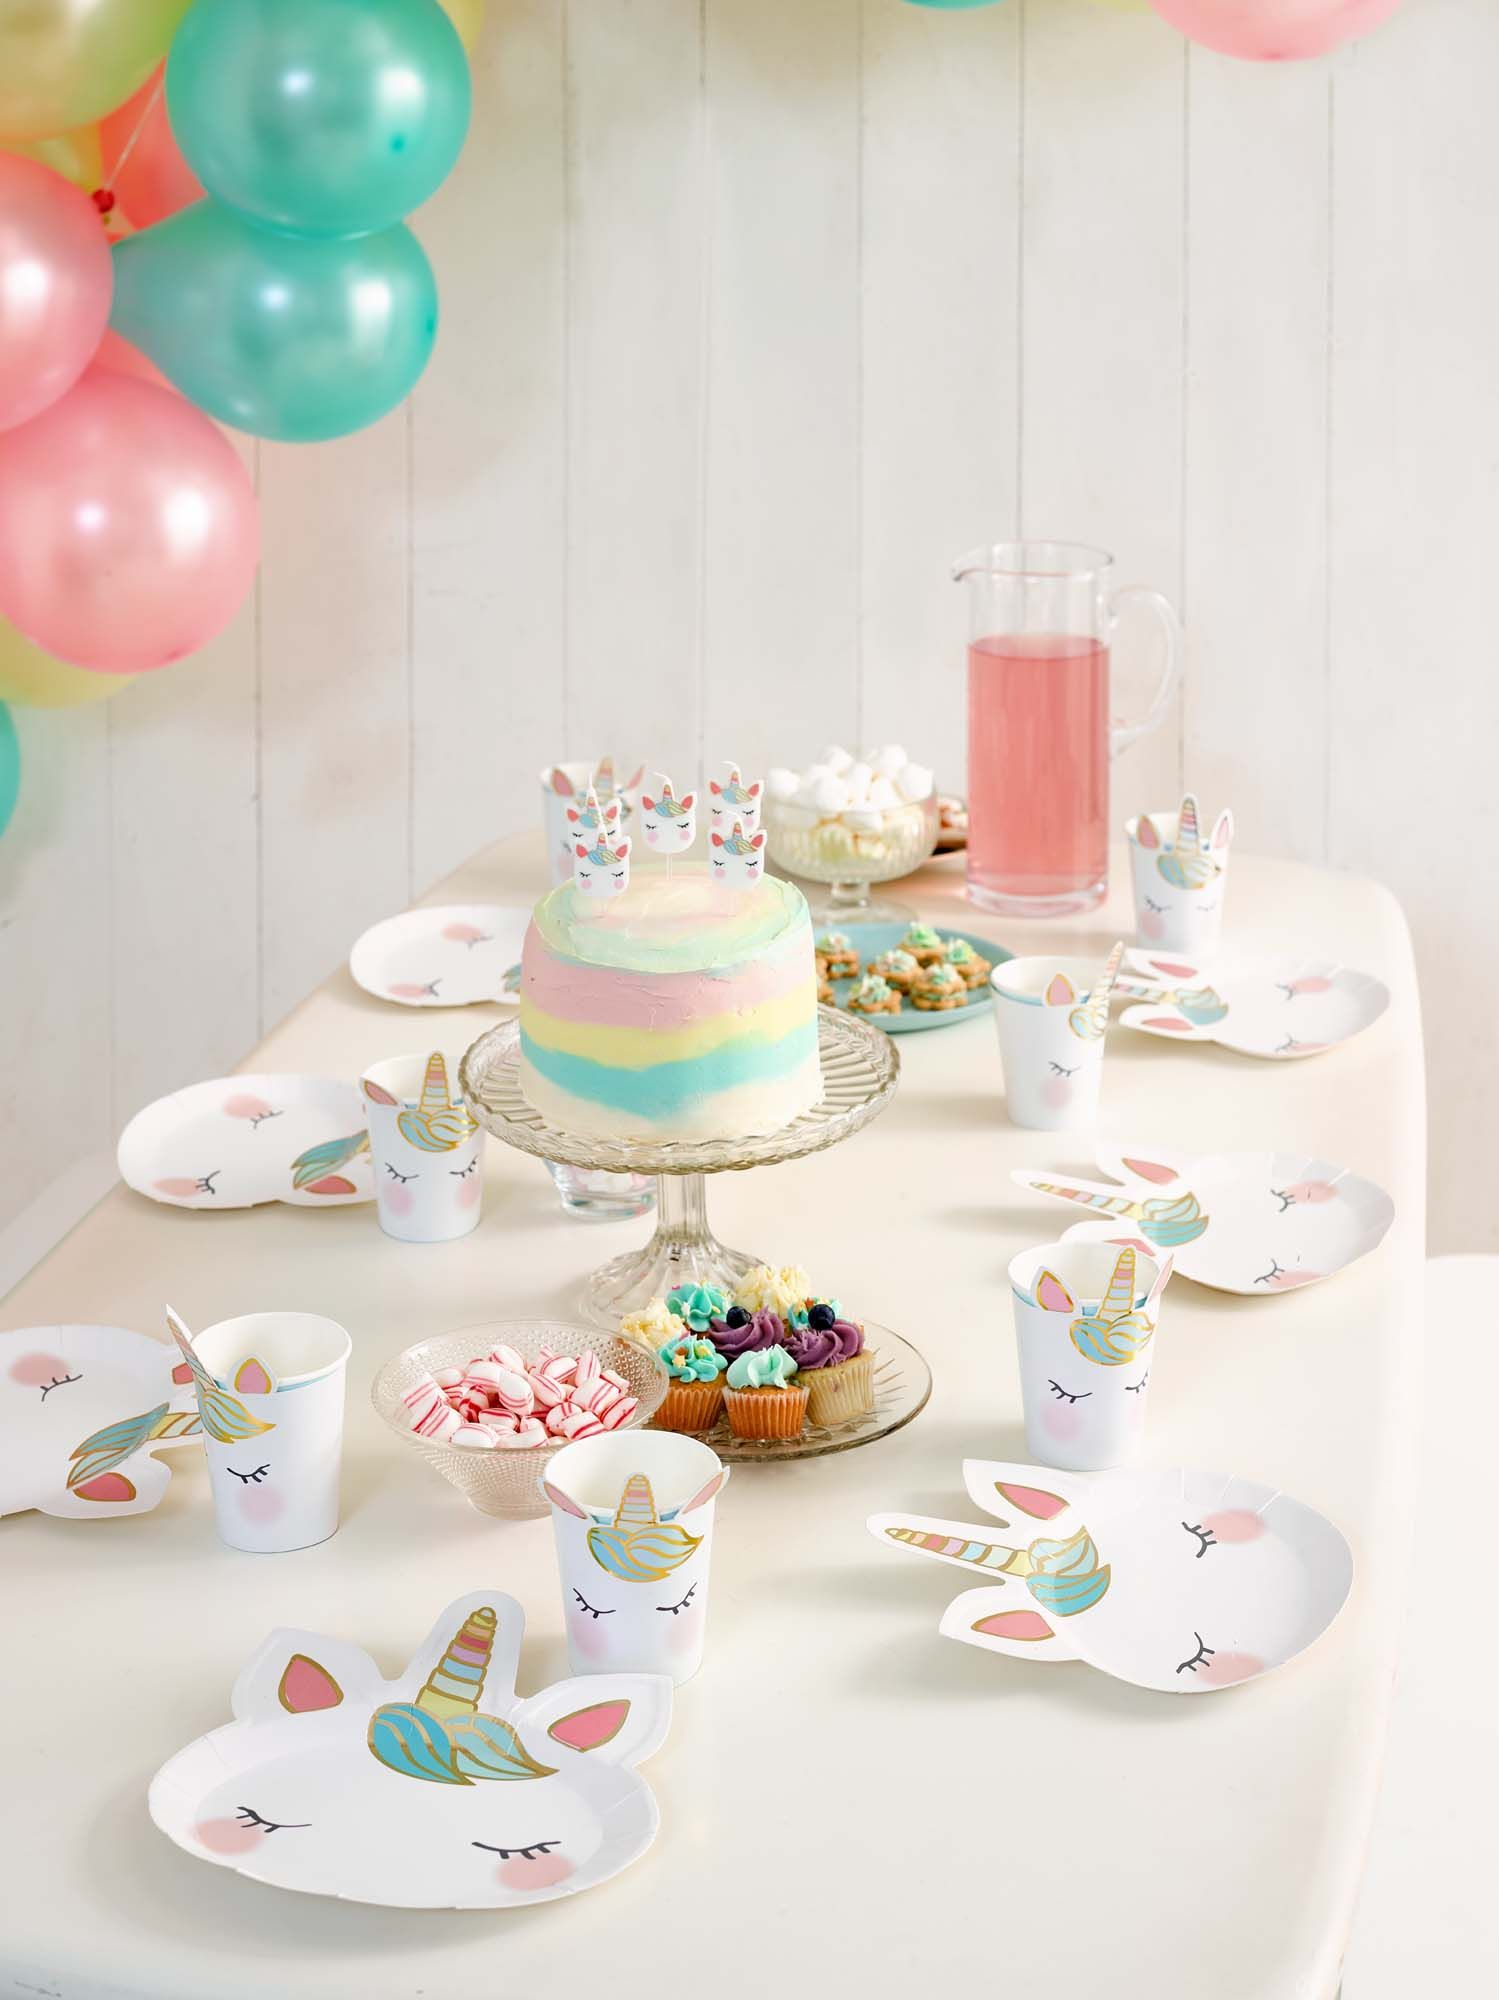 Unicorn Party table setting using our brand new shaped